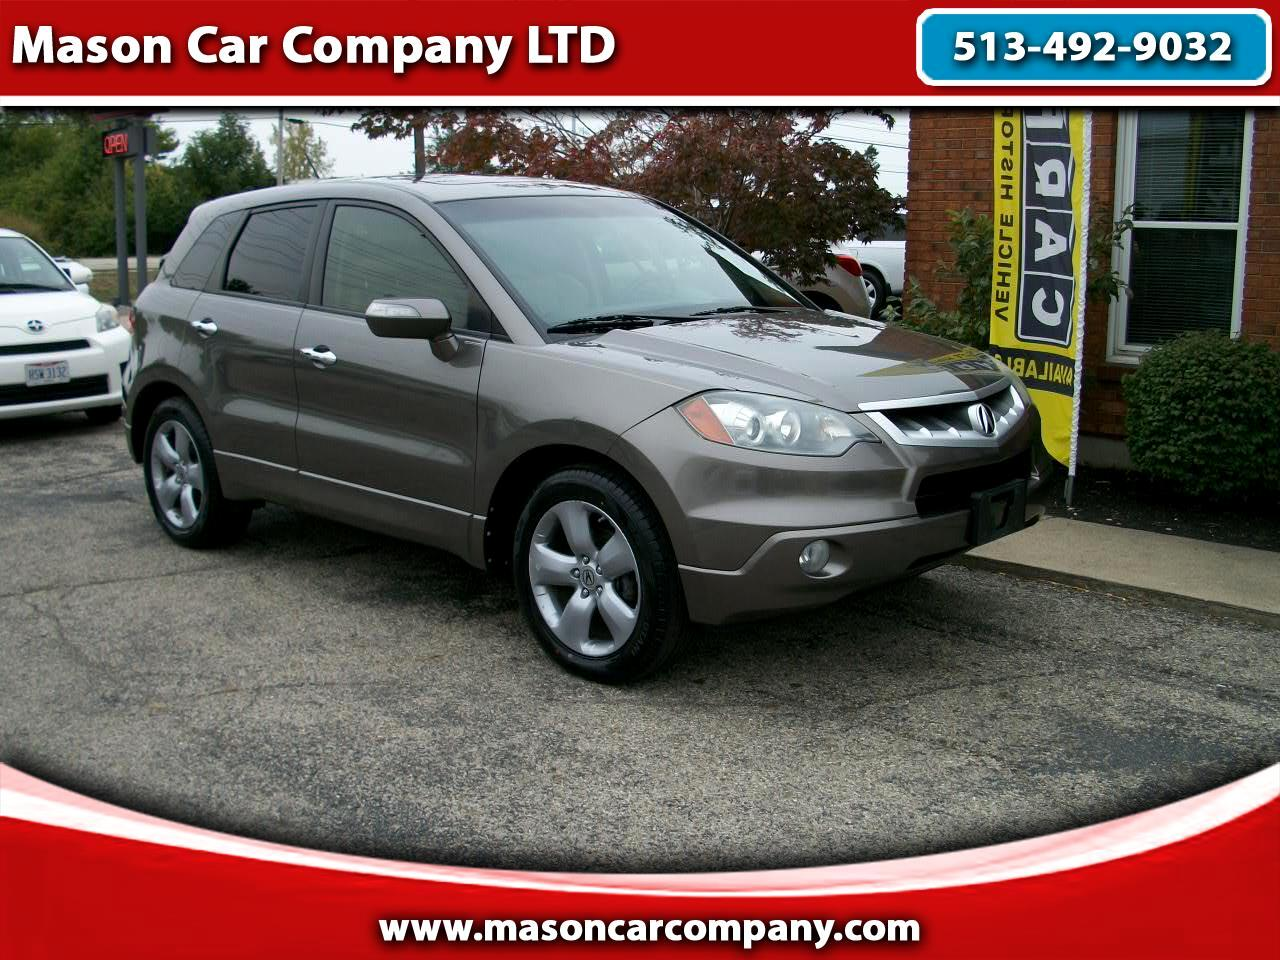 Used 2008 Acura Rdx 5 Spd At With Technology Package For Sale In Mason Oh 45040 Mason Car Company Ltd